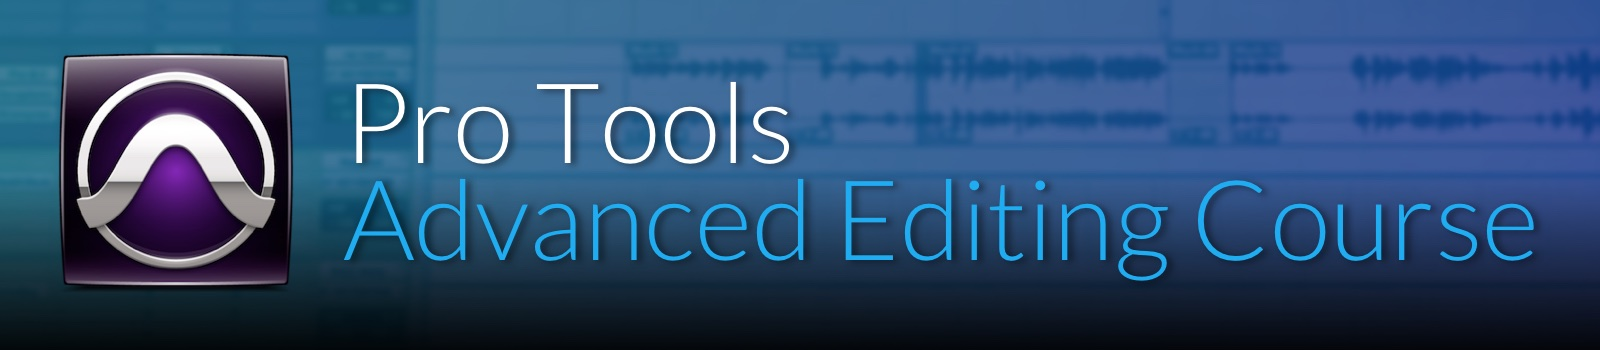 Advanced Editing with Pro Tools Course by pureMix.net